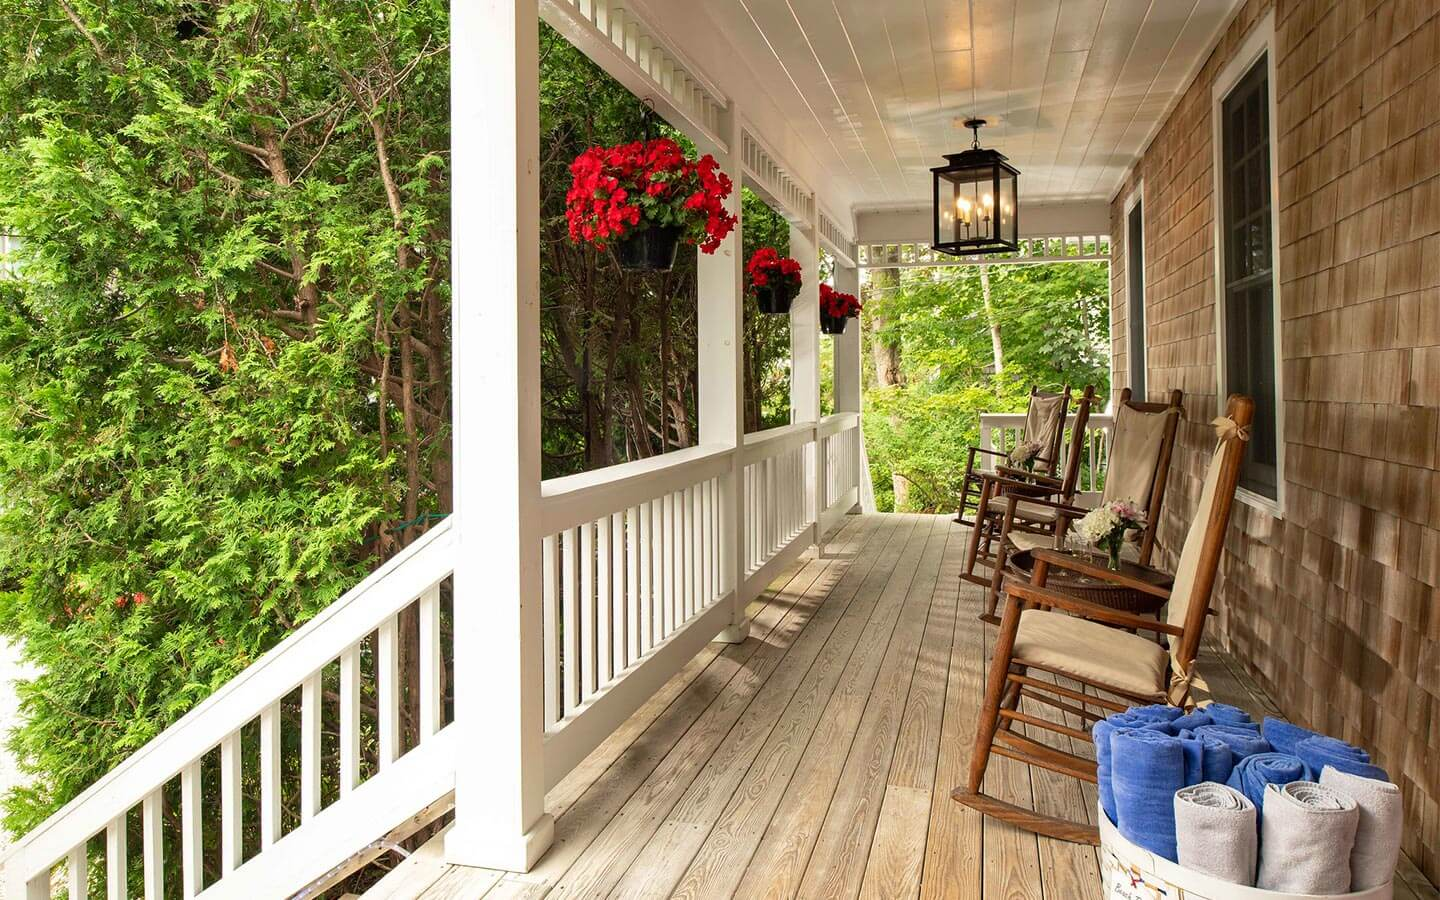 Front porch with rocking chairs at our bed and breakfast in Falmouth, MA